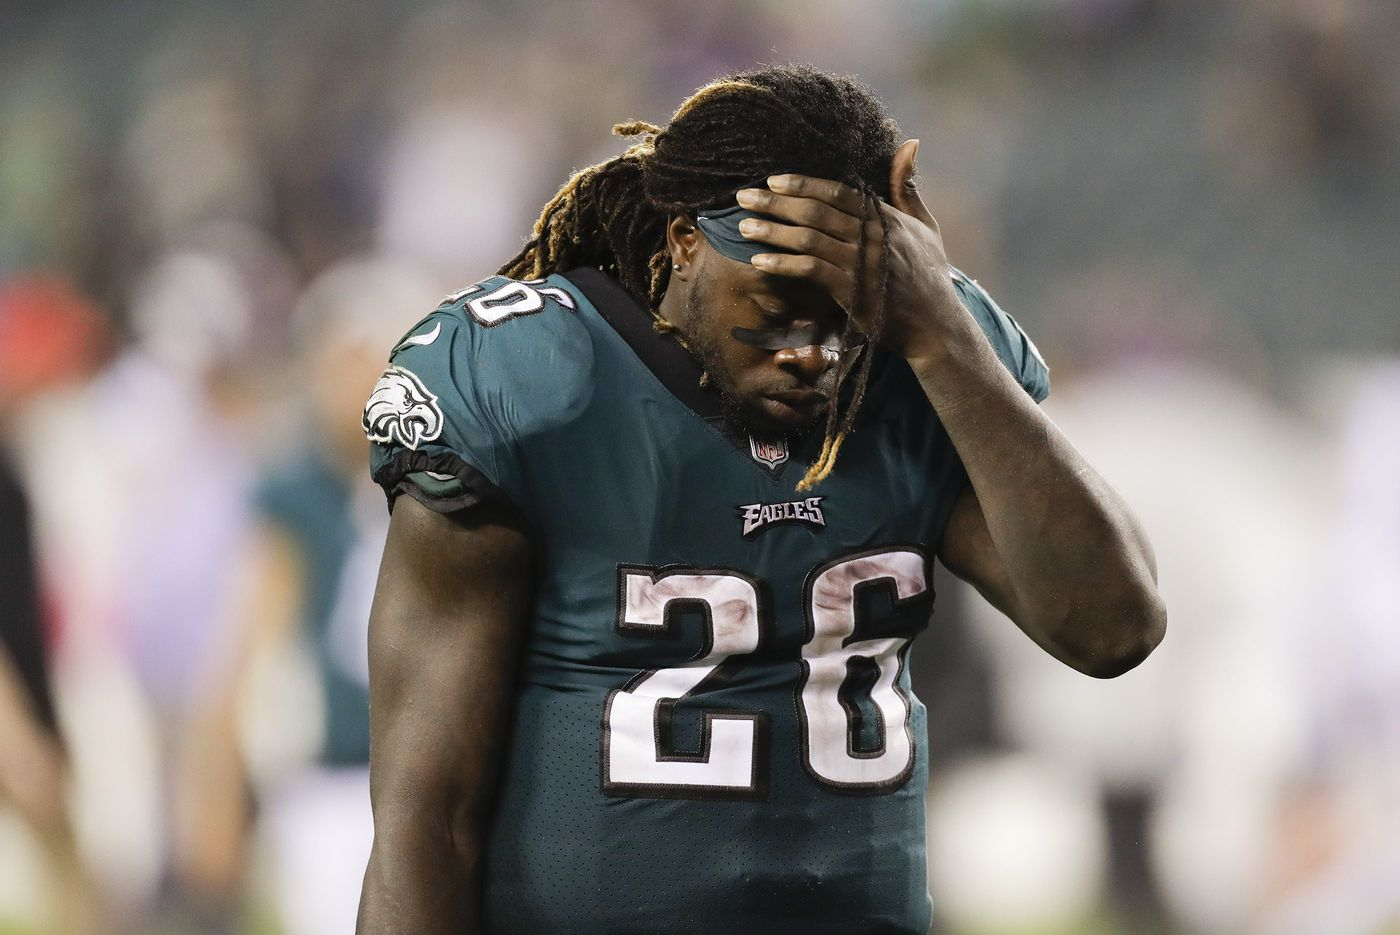 Which running backs have been linked to the Philadelphia Eagles?